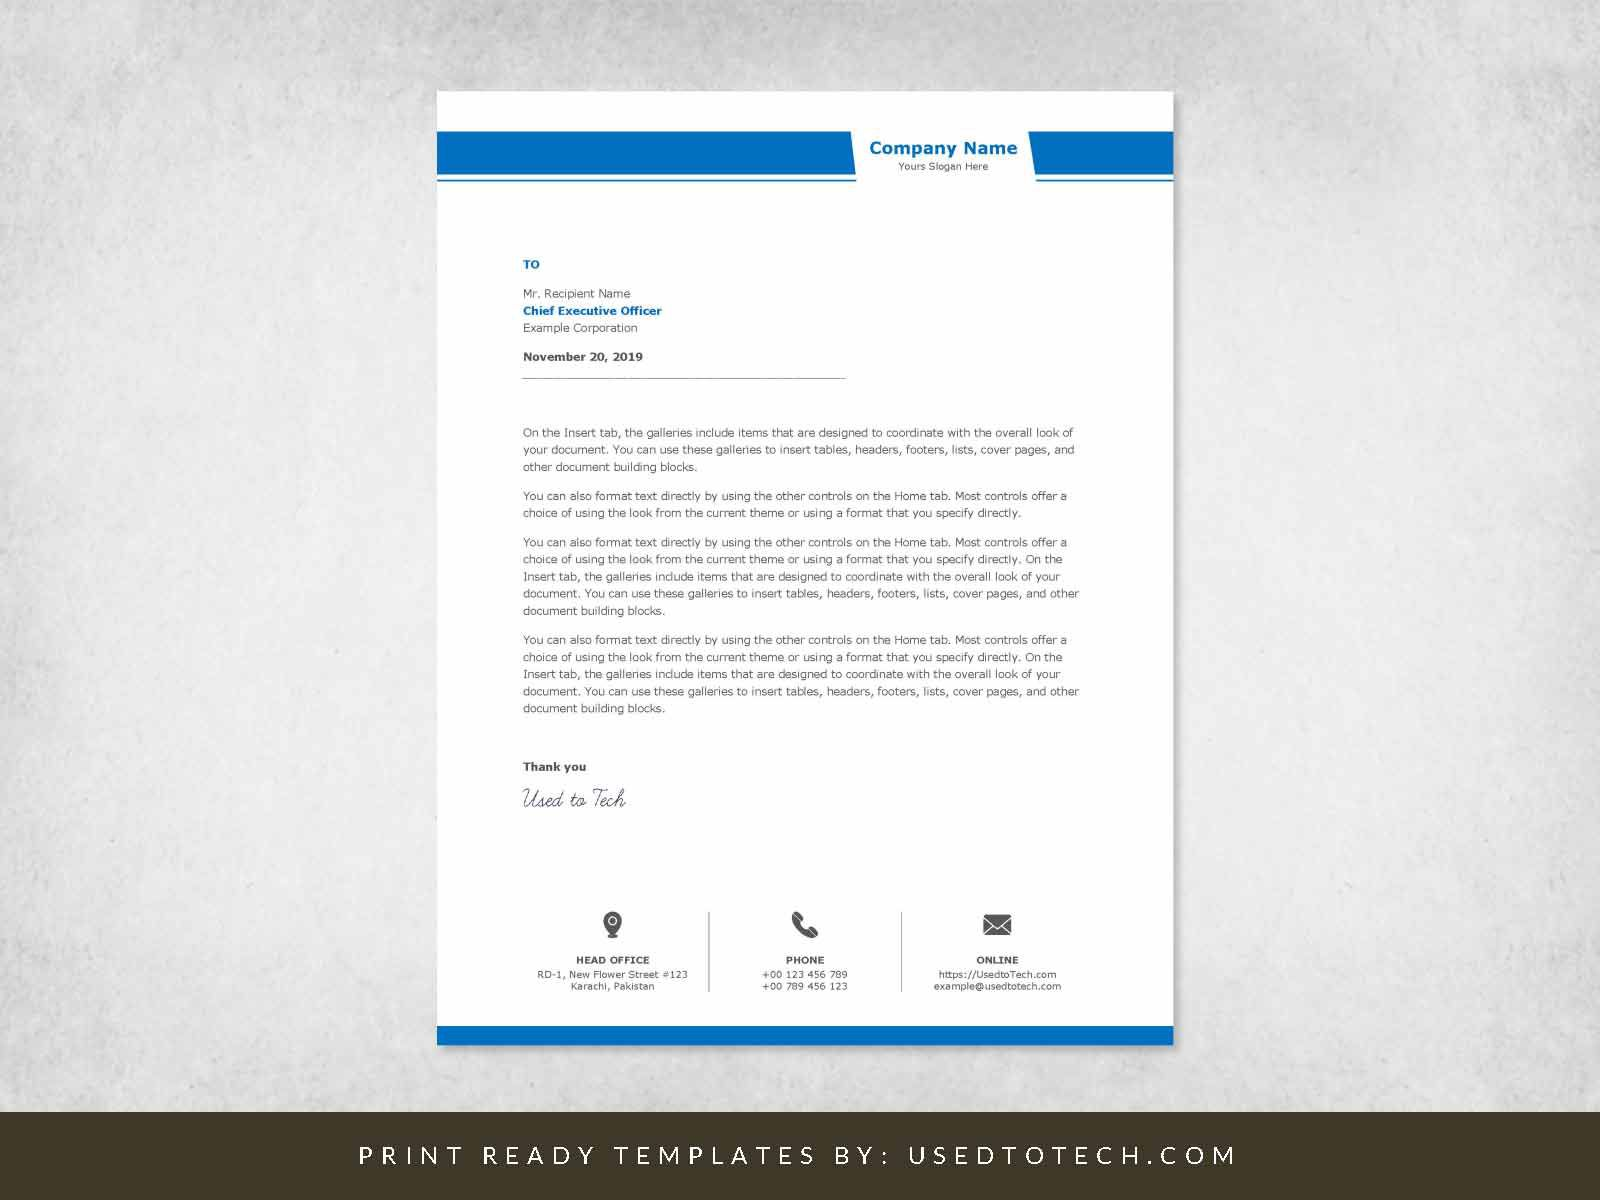 001 Unusual Company Letterhead Template Word High Resolution  Busines 2007 Free DownloadFull